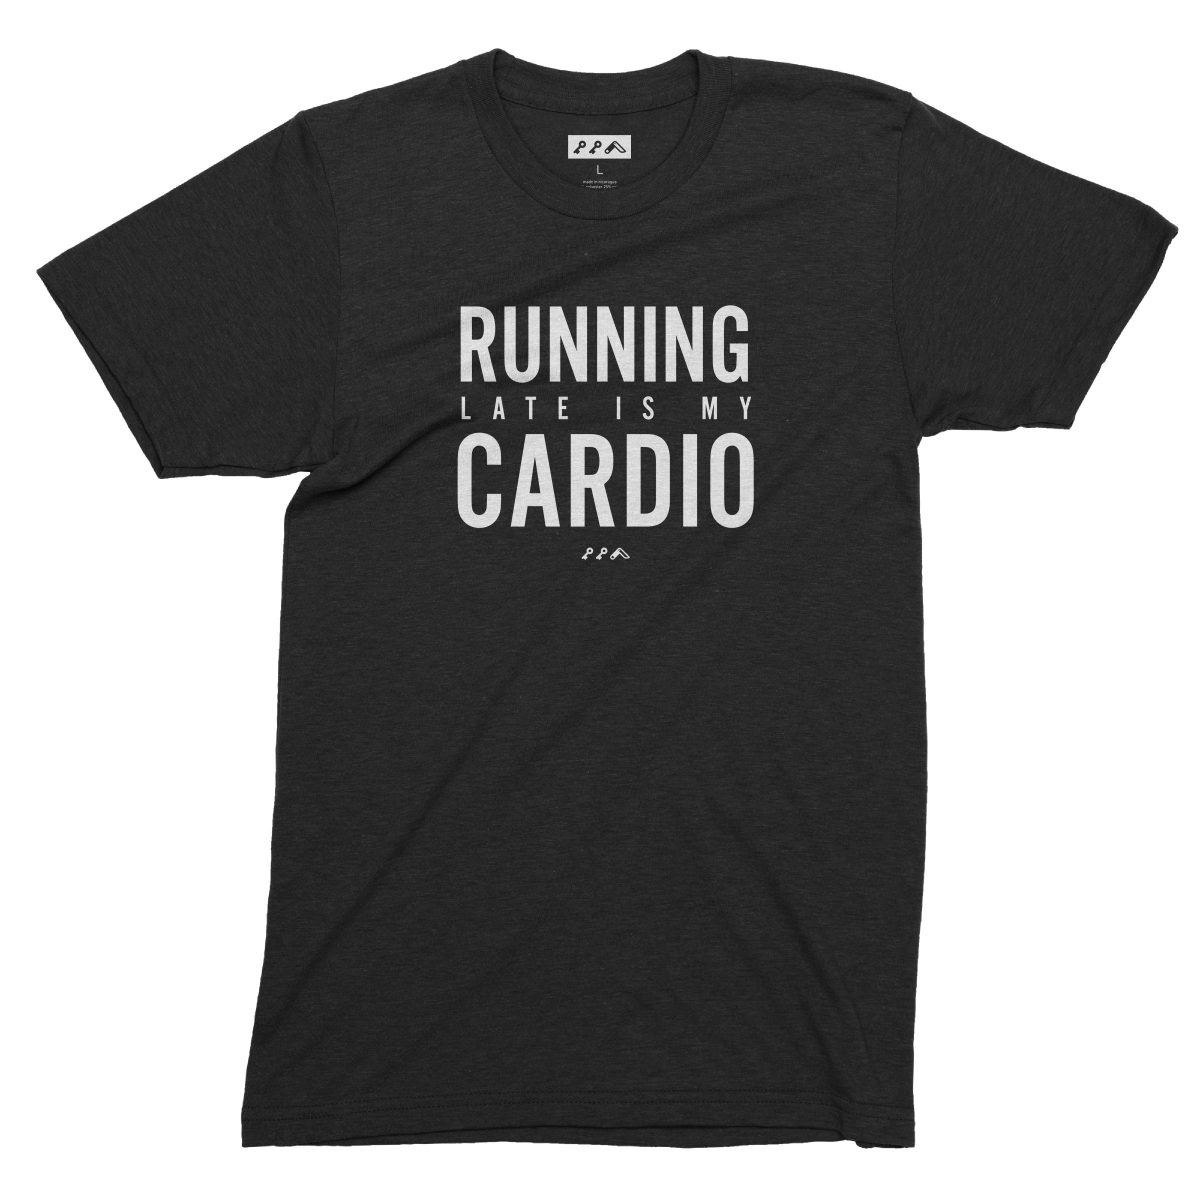 RUNNING LATE IS MY CARDIO funny workout t-shirts in black by kikicutt